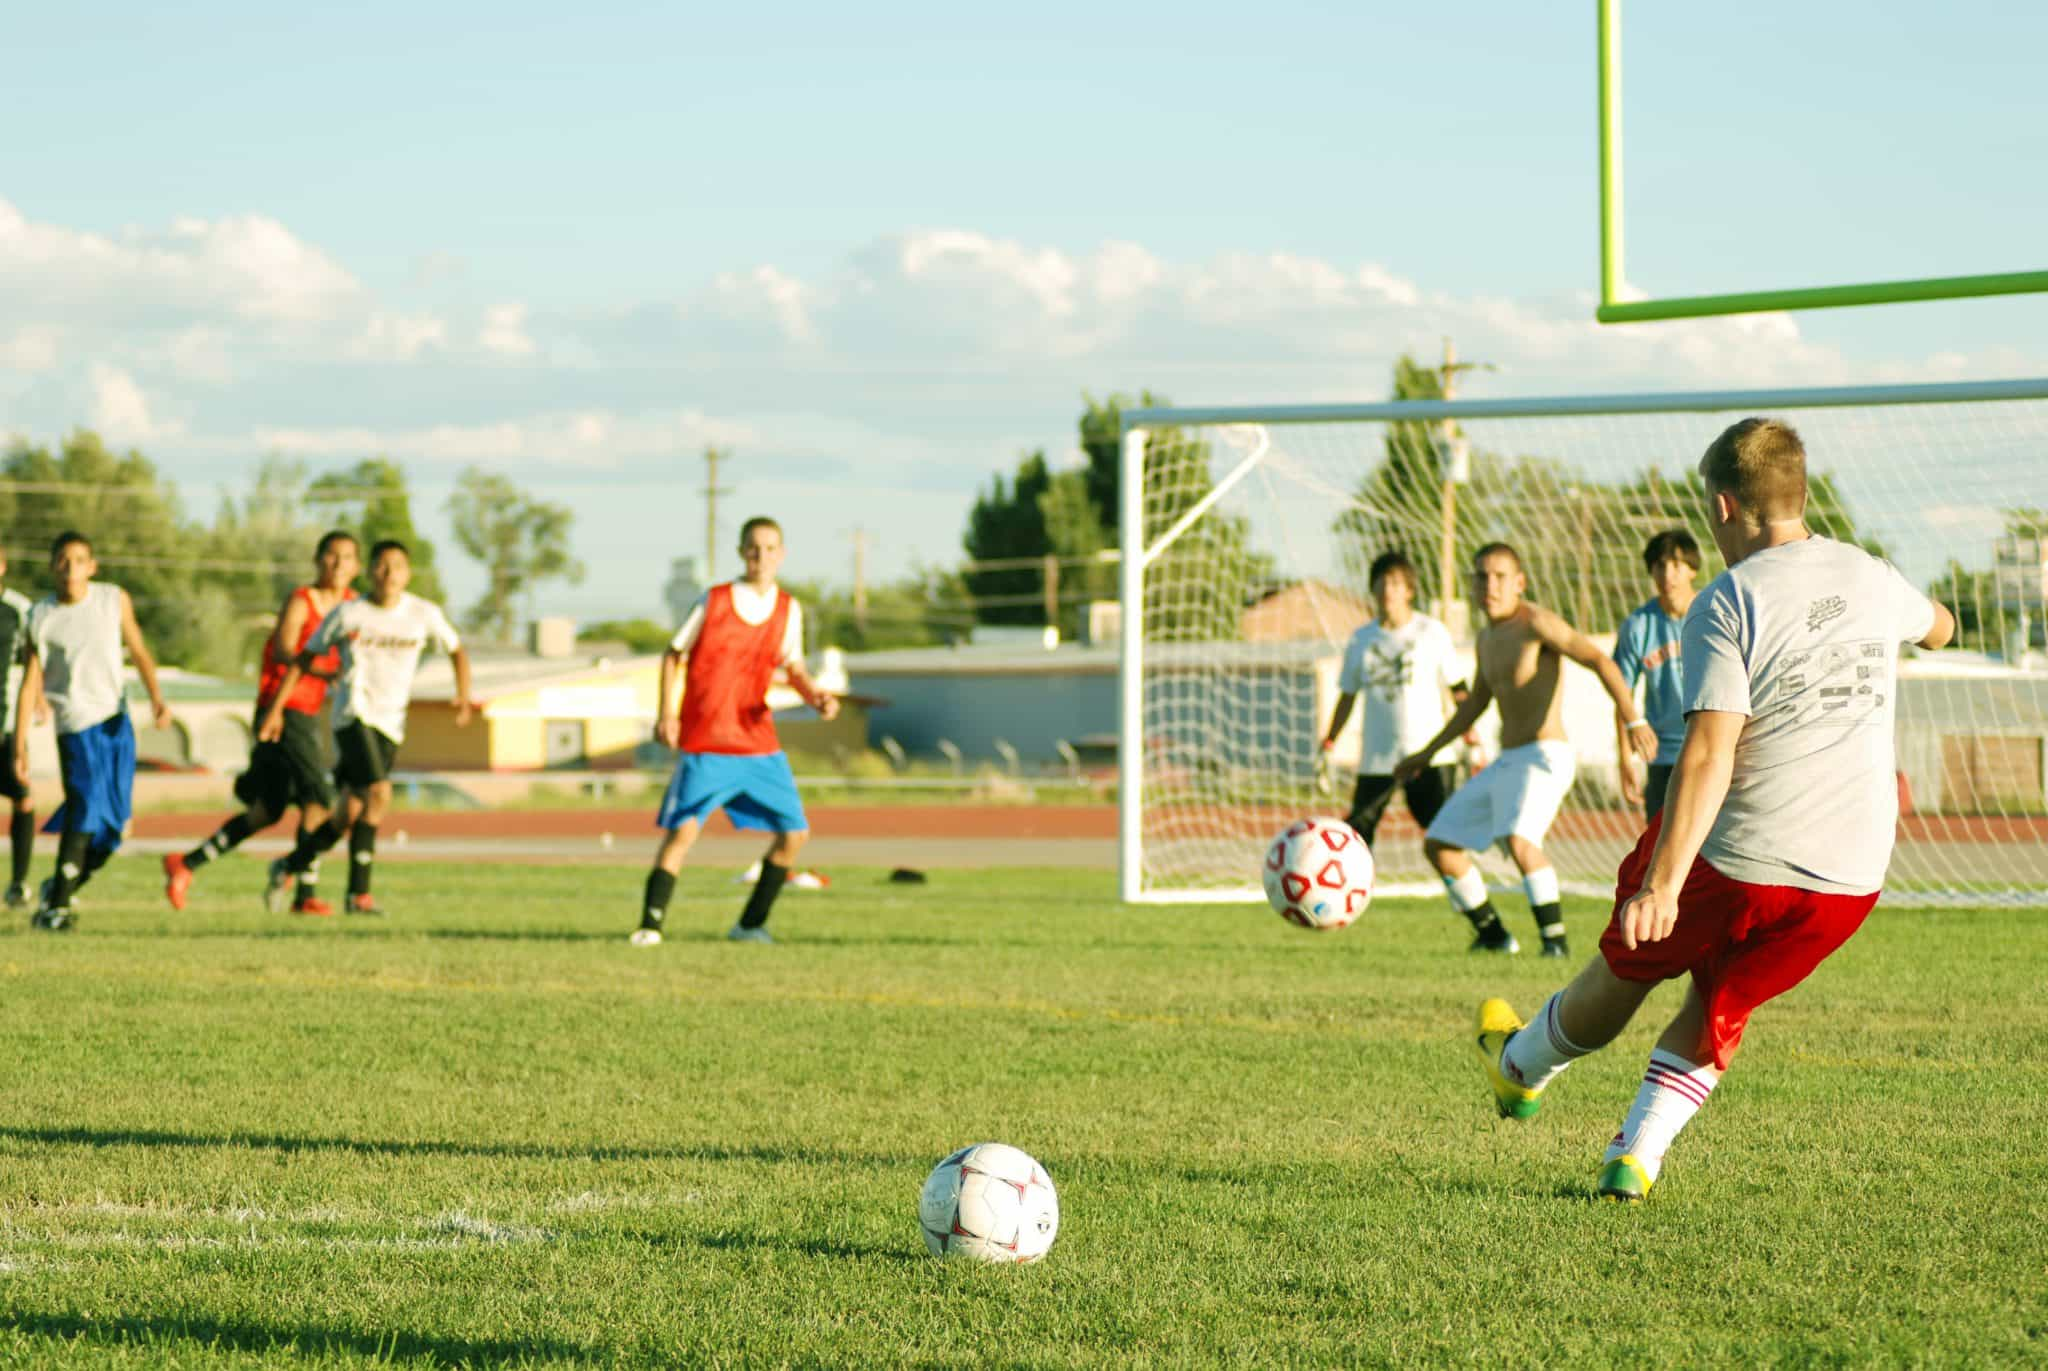 How to Kick a Free Kick in Soccer